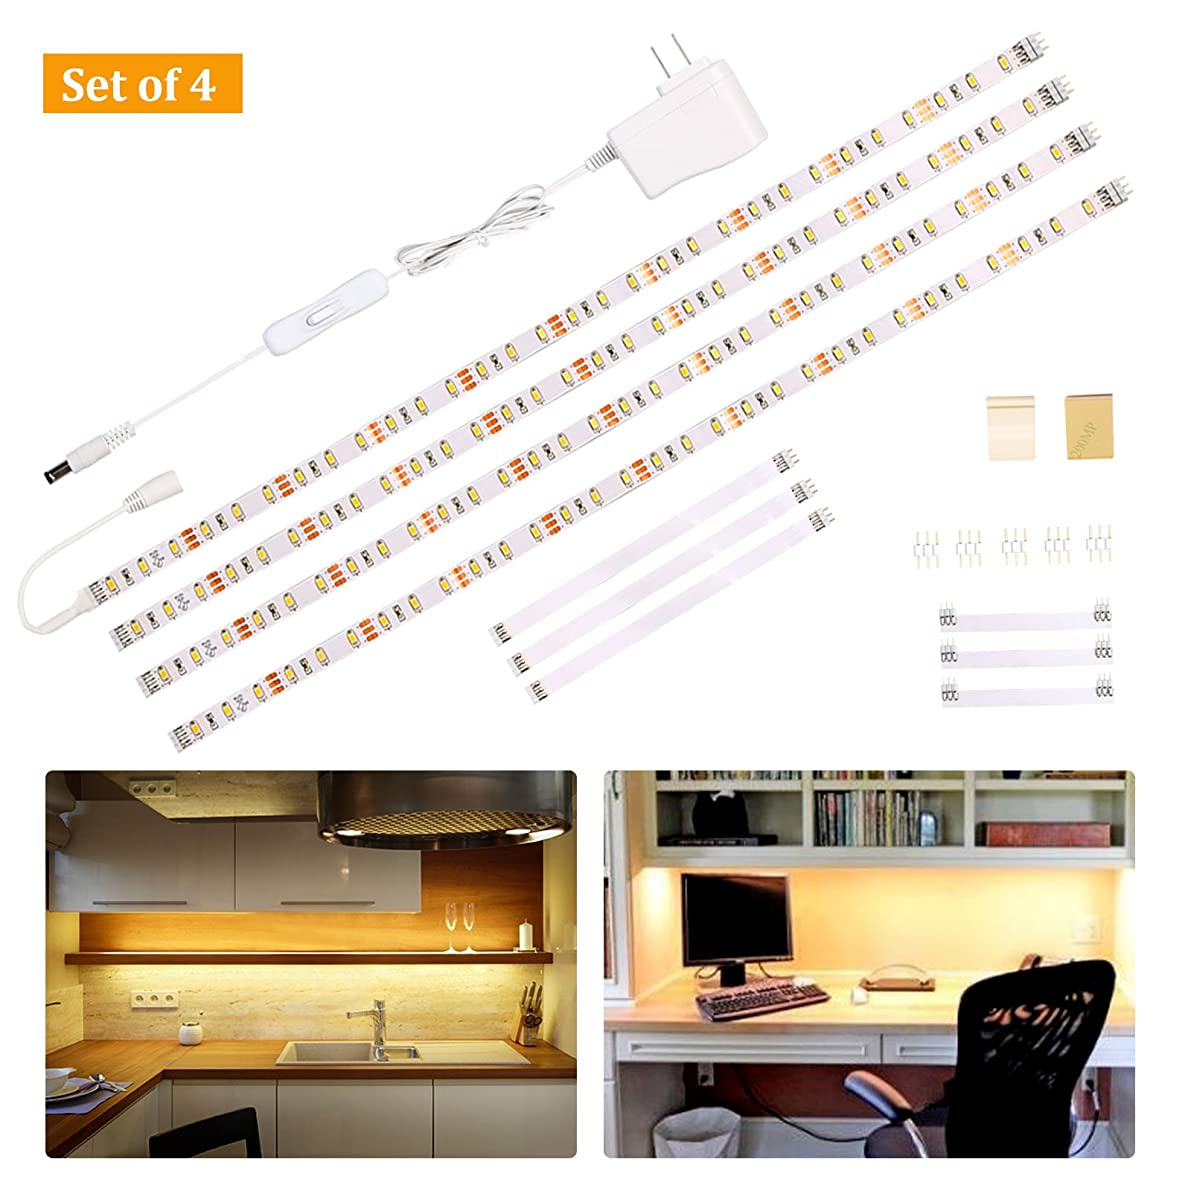 Wobane Under Cabinet Lighting Kit,Flexible LED Strip Lights Bar,Under Counter Lights for Kitchen,Cupboard,Desk,Monitor Back,Shelf,6.6 Feet Tape Light Set,UL Listed,120 LEDs,1100lm,2700K WarmWhite